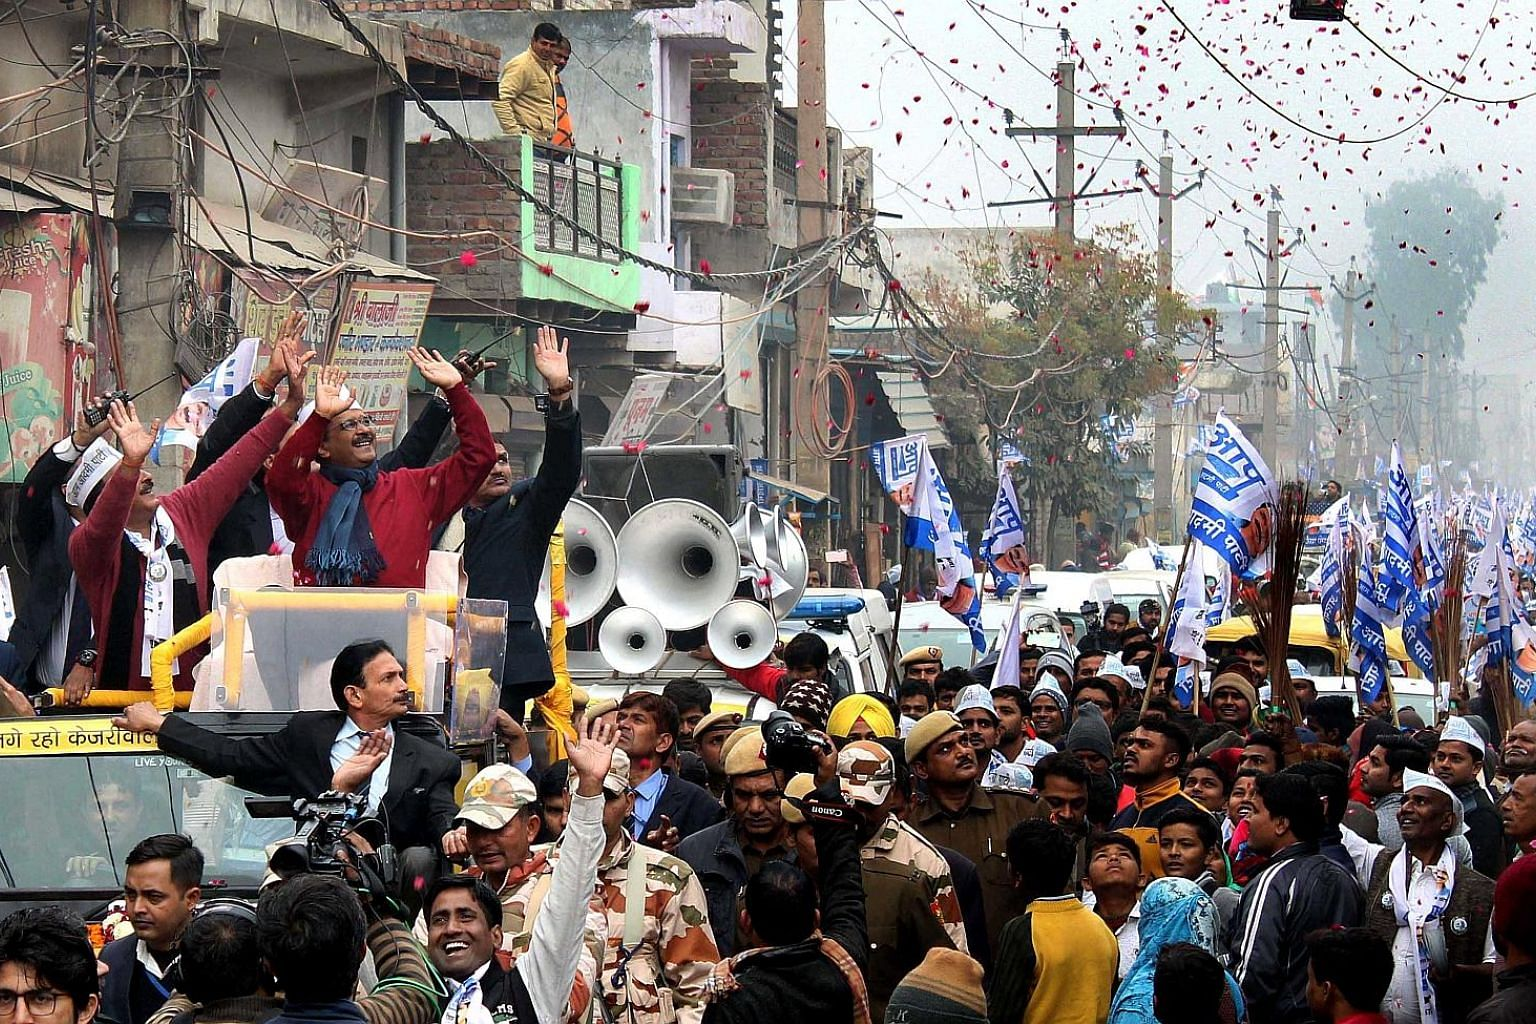 Aam Aadmi Party (AAP) leader and Delhi Chief Minister Arvind Kejriwal (in red sweater and blue scarf) greeting supporters during a roadshow on Wednesday in New Delhi for the upcoming elections. The polls will pit the Bharatiya Janata Party against th